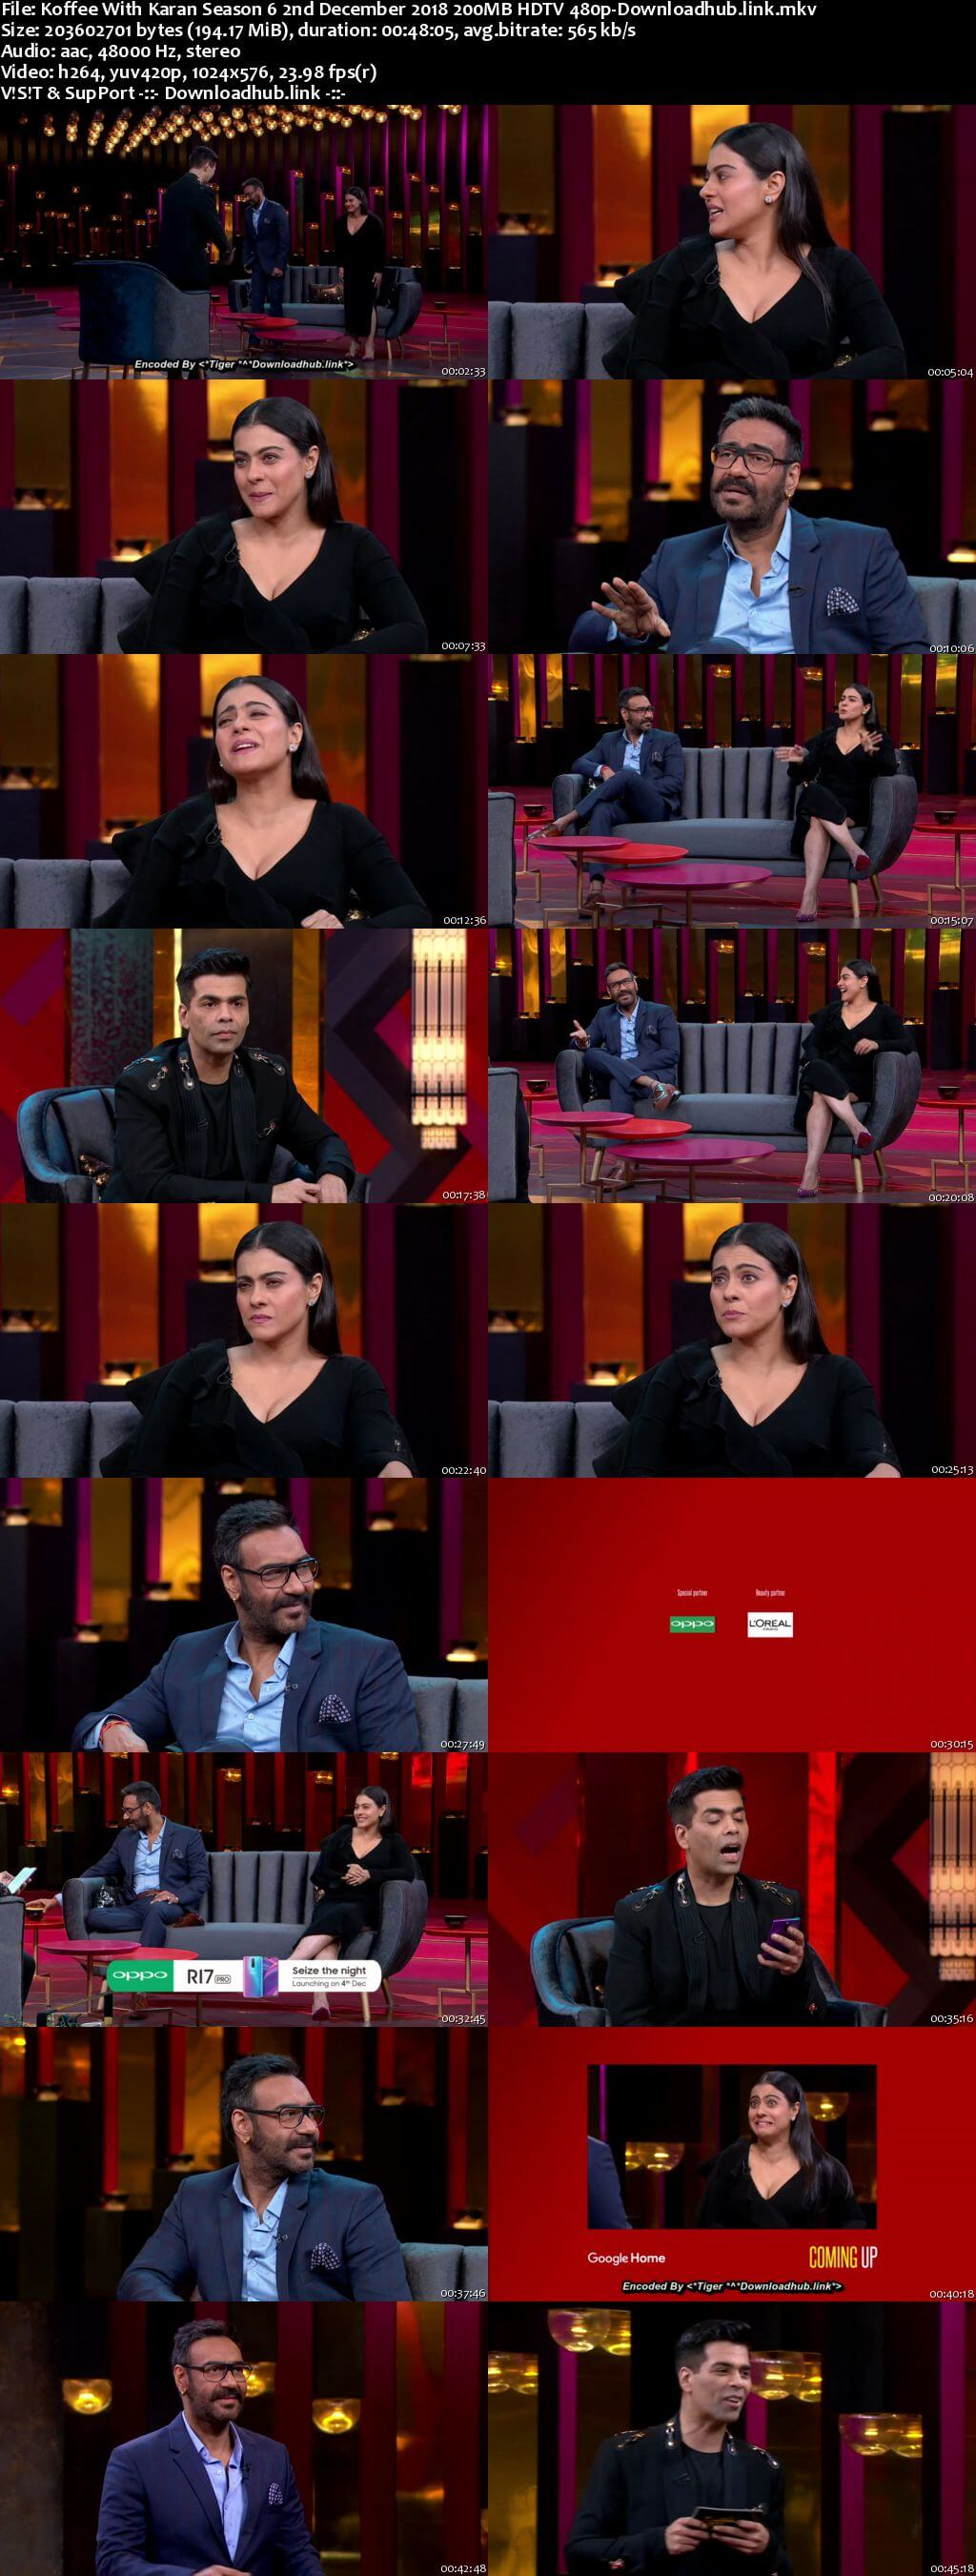 Koffee With Karan 6 02 December 2018 Episode 07 HDTV 480p